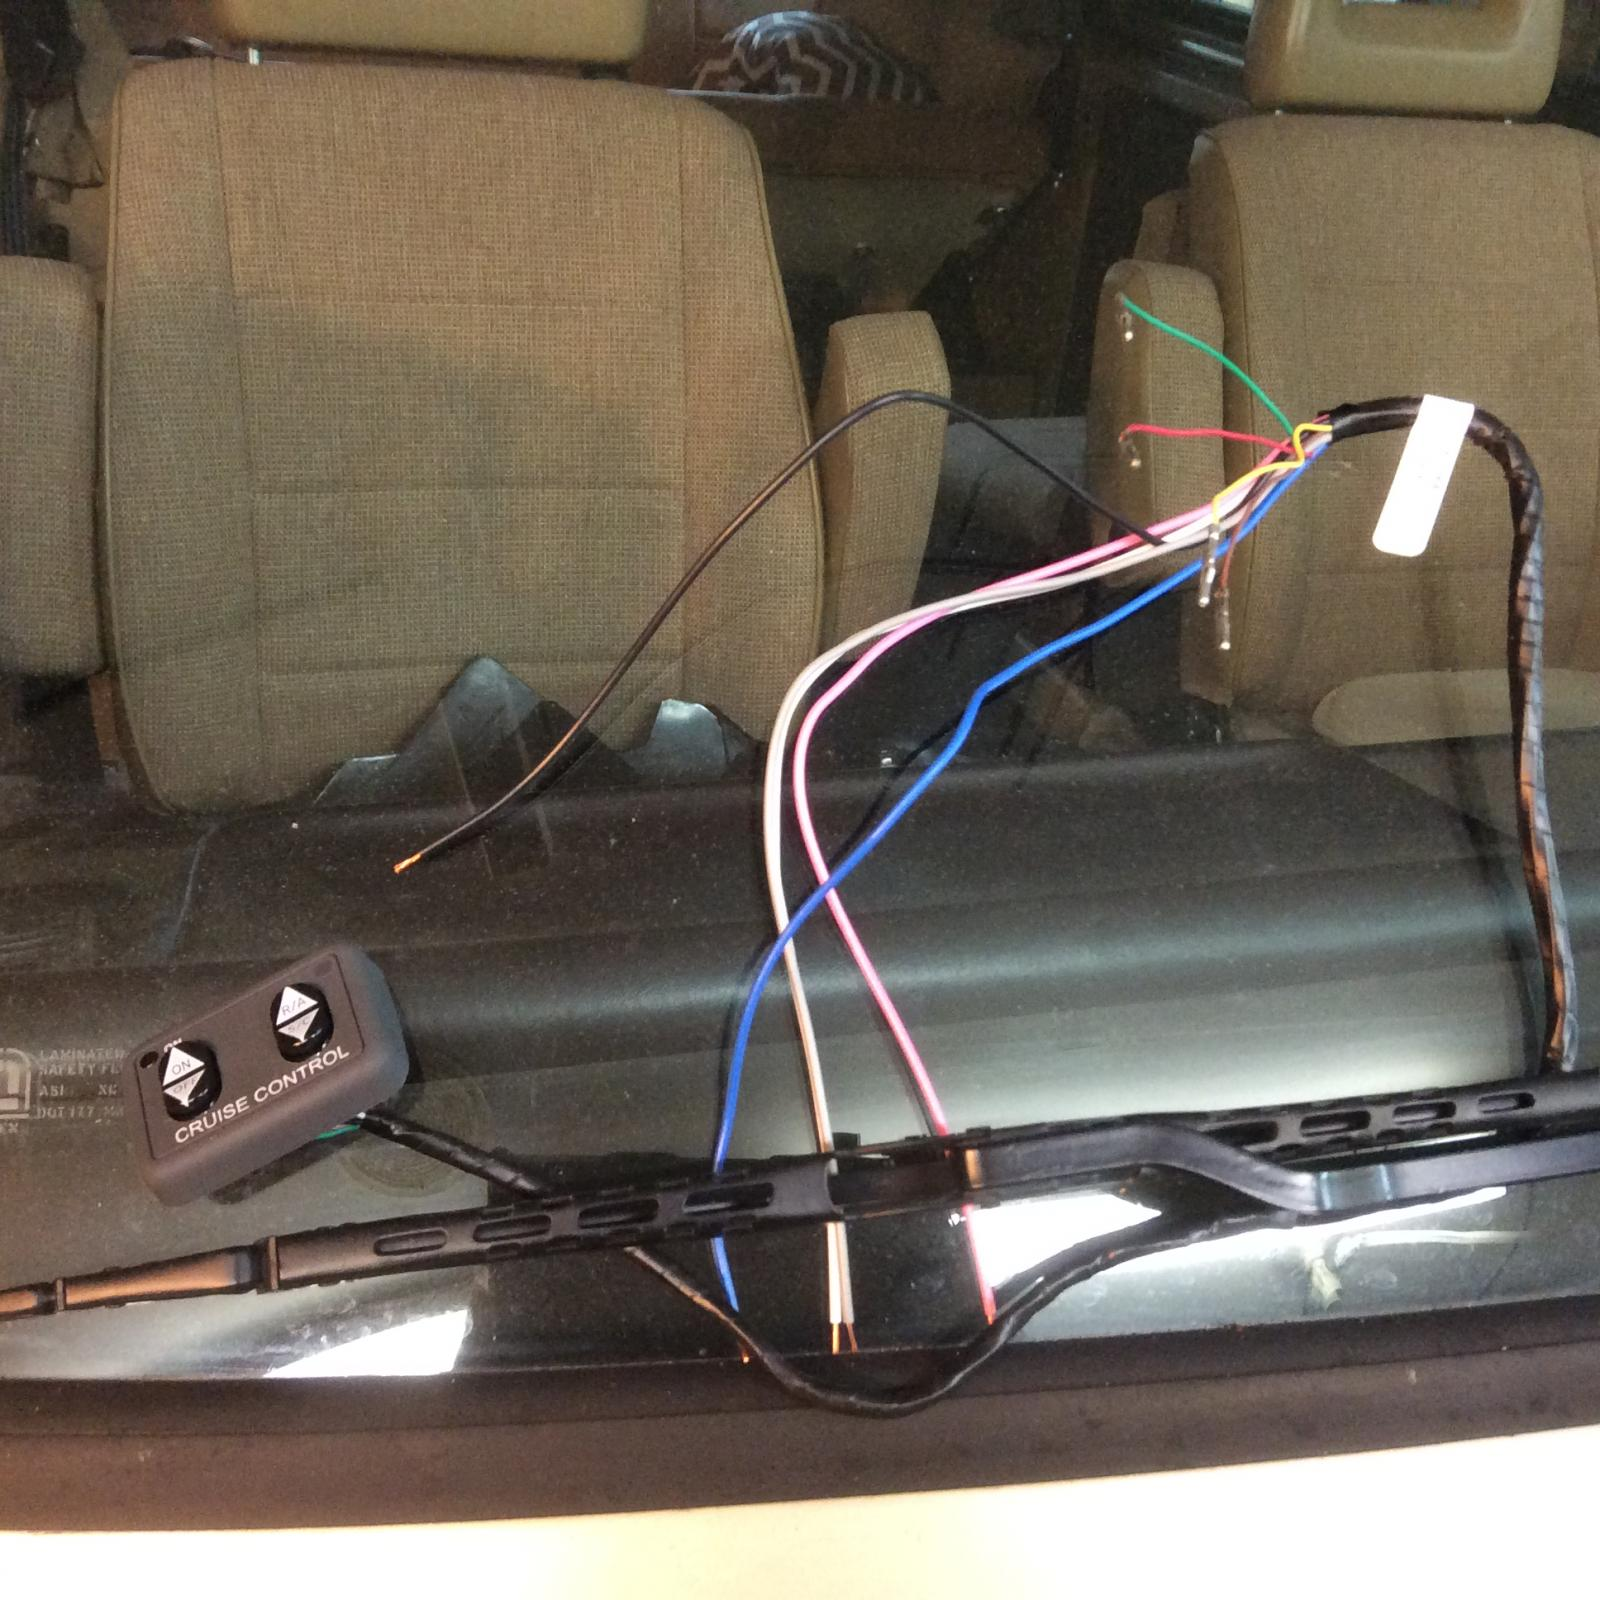 Vanagon View Topic Installing Rostra Cruise Wiring Diagram Image May Have Been Reduced In Size Click To Fullscreen